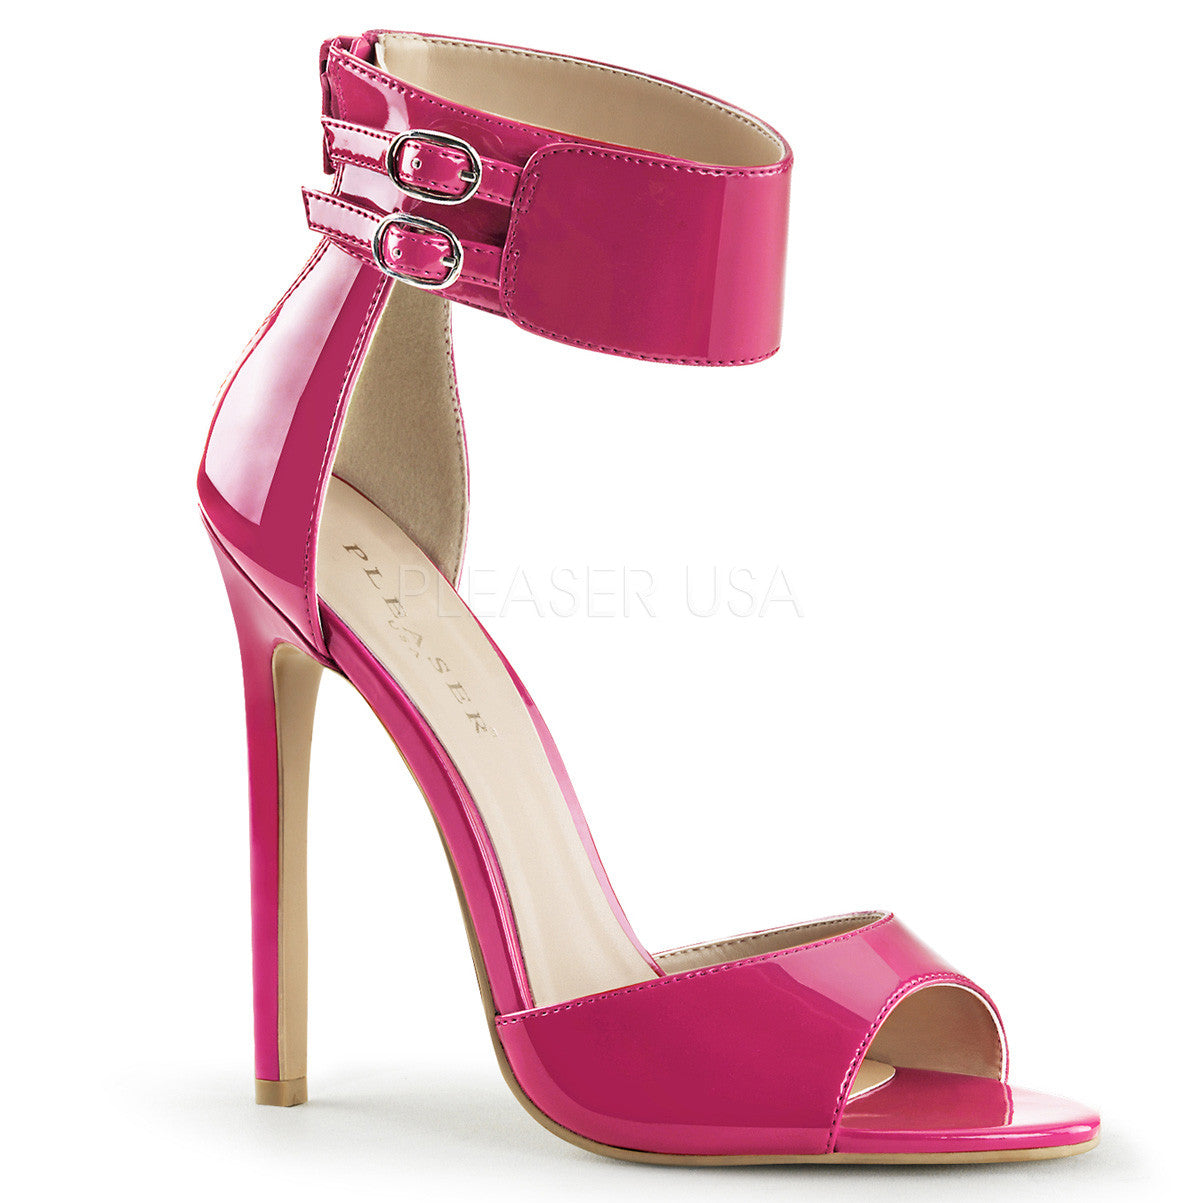 Pleaser SEXY-19 Fuchsia Patent Ankle Strap Sandals - Shoecup.com